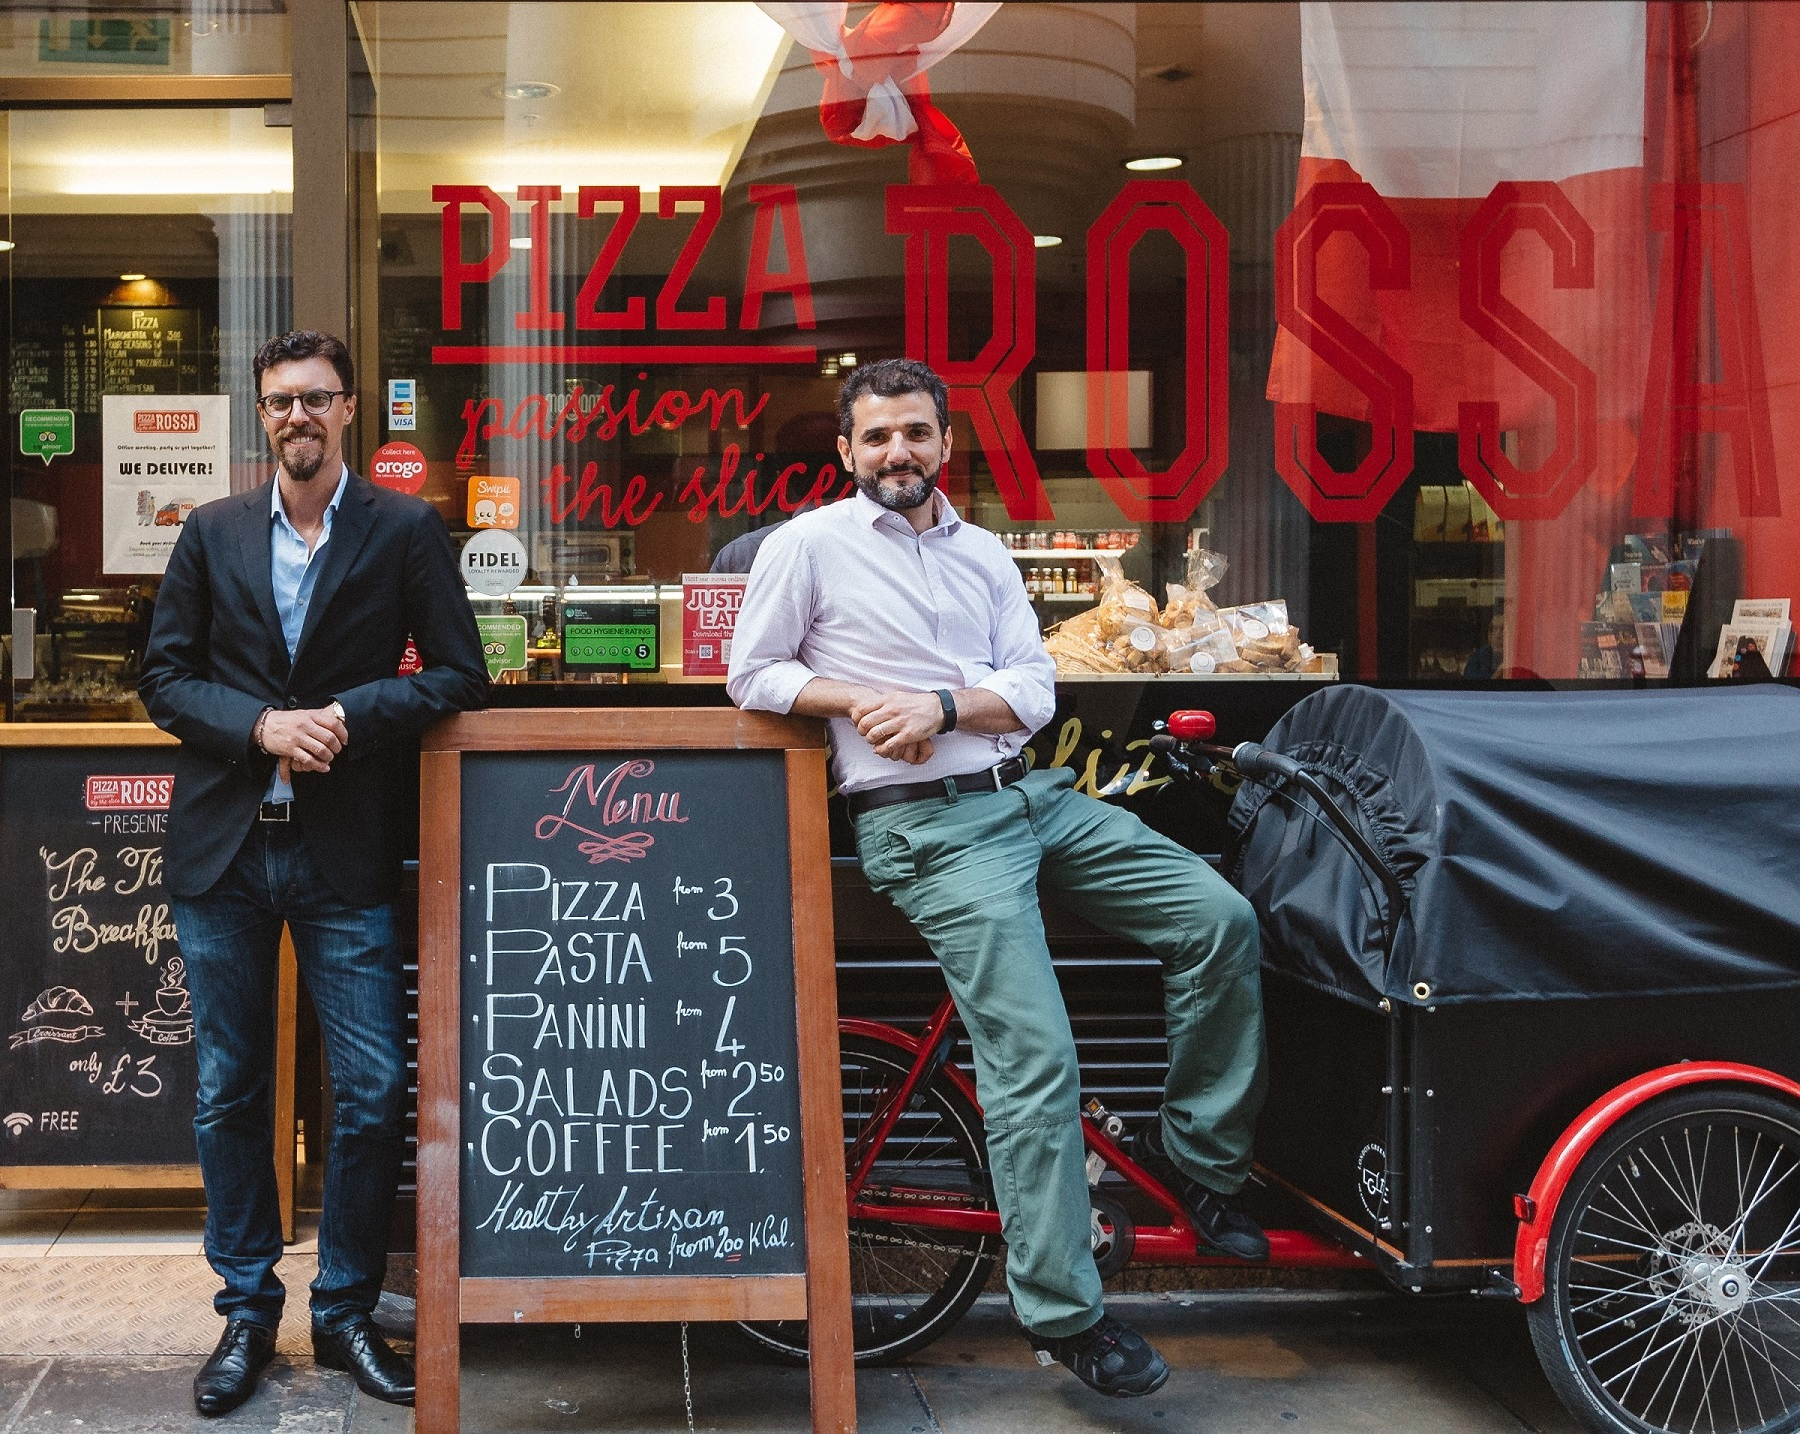 AETHOS Consulting Group_Entrepreneurs Corner_In Conversation With Pizza Rossa Founder Corrado Accardi_Thomas Mielke Managing Director